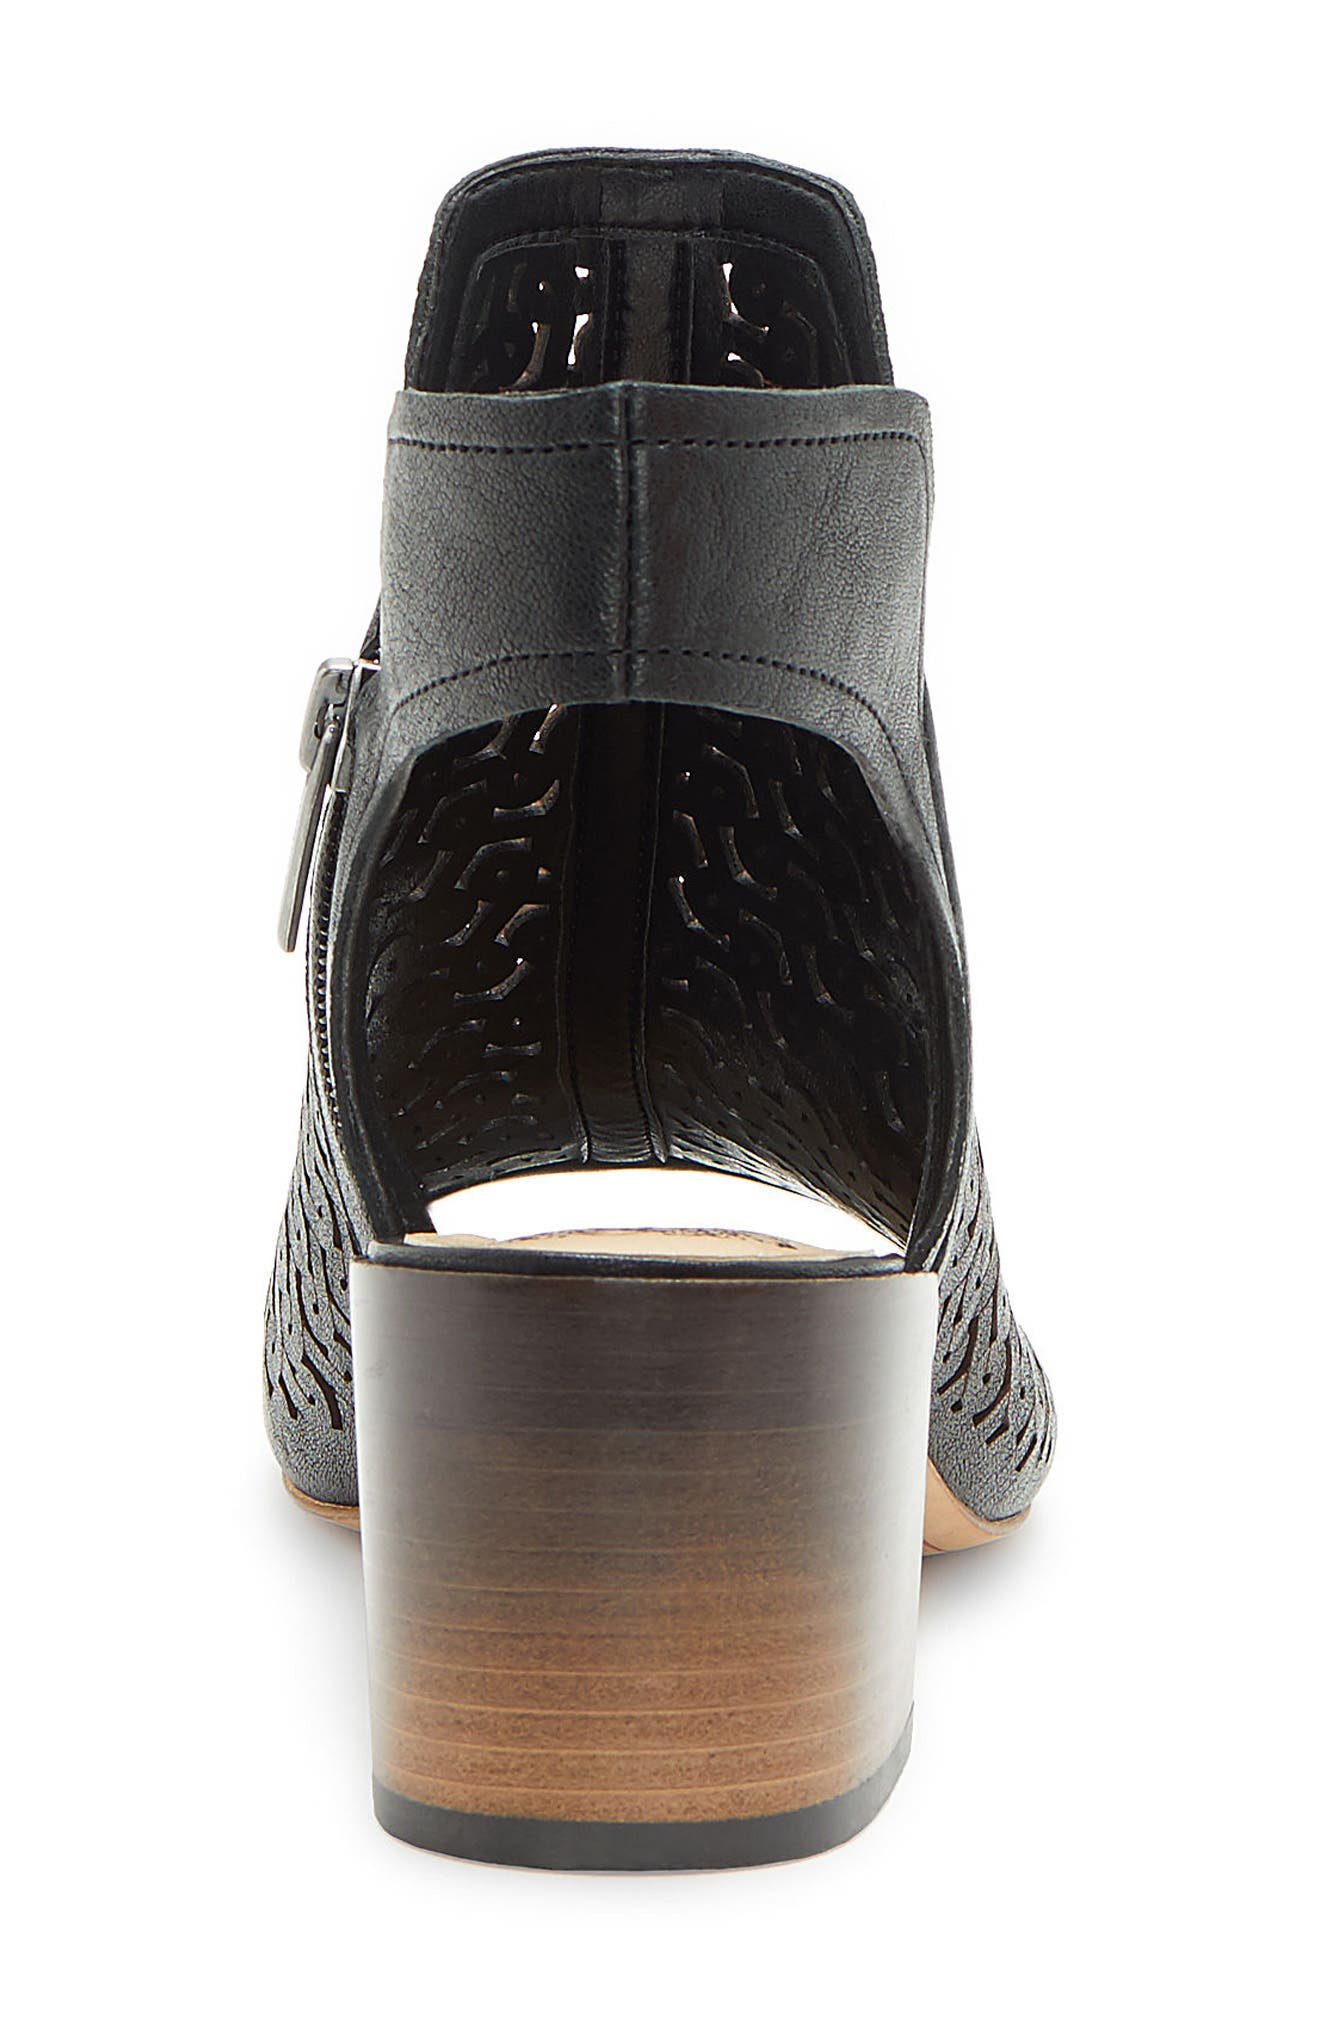 Sternat Sandal,                             Alternate thumbnail 7, color,                             BLACK LEATHER